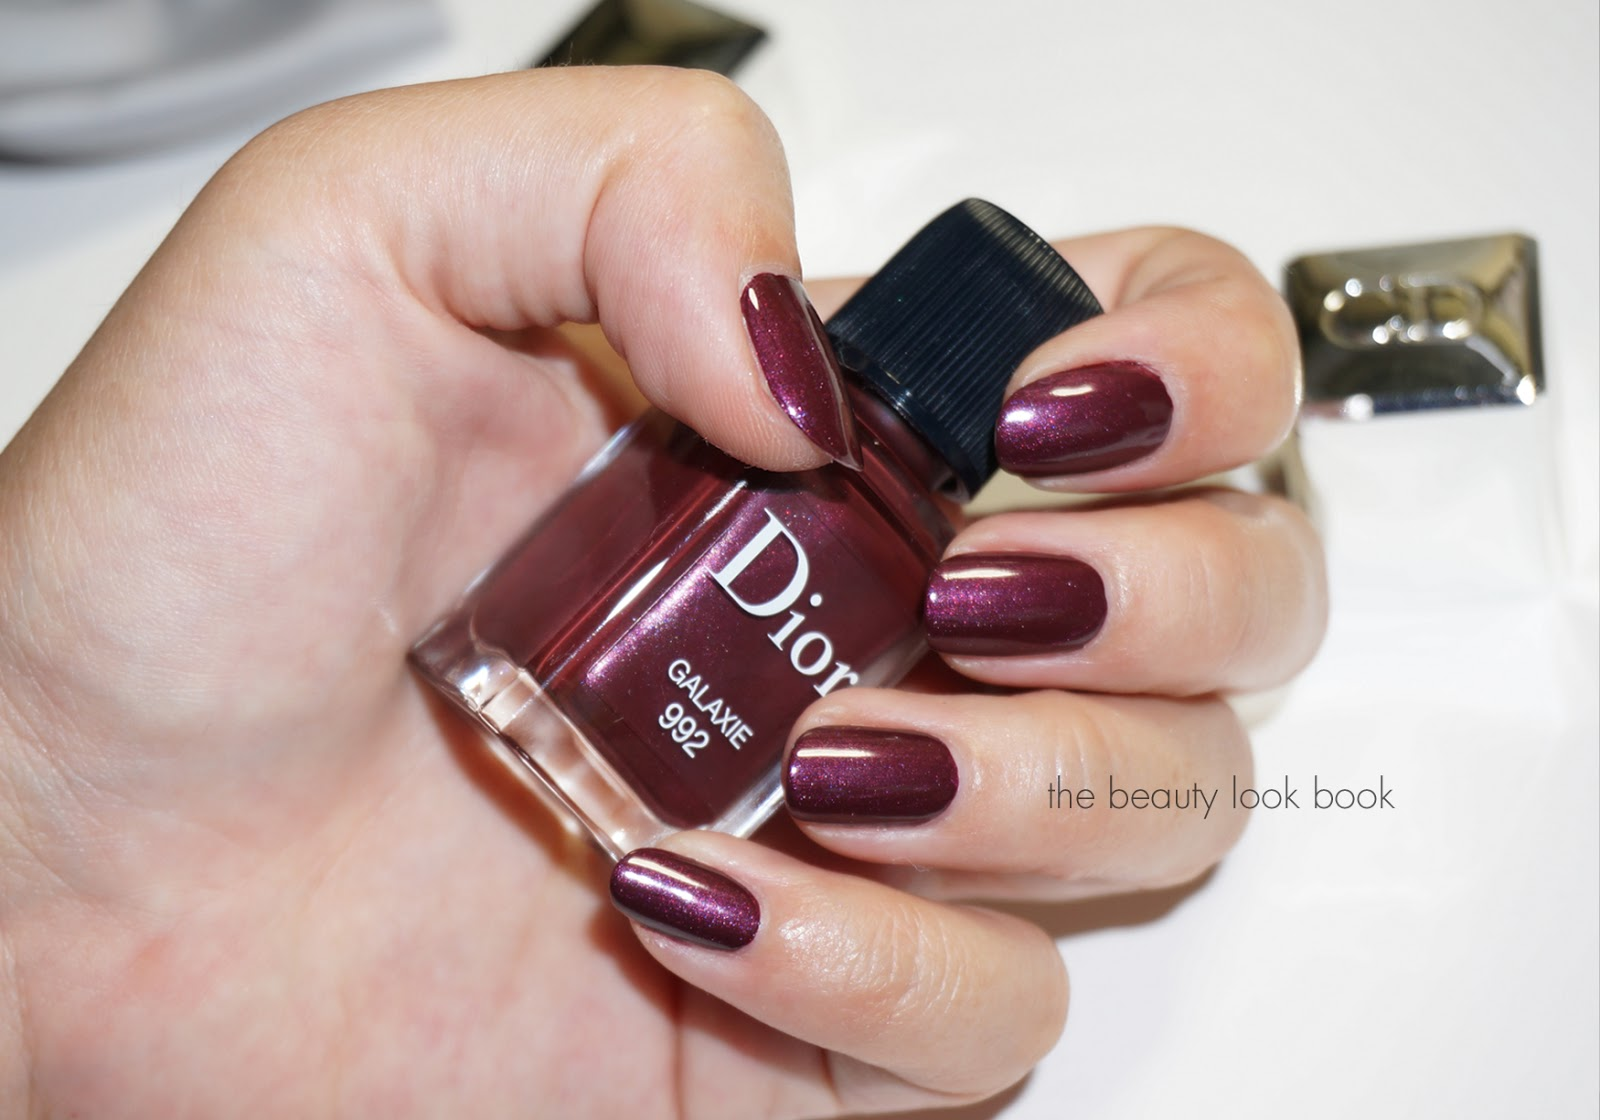 Dior Mystic Metallics Vernis Destin 382 and Galaxie 992